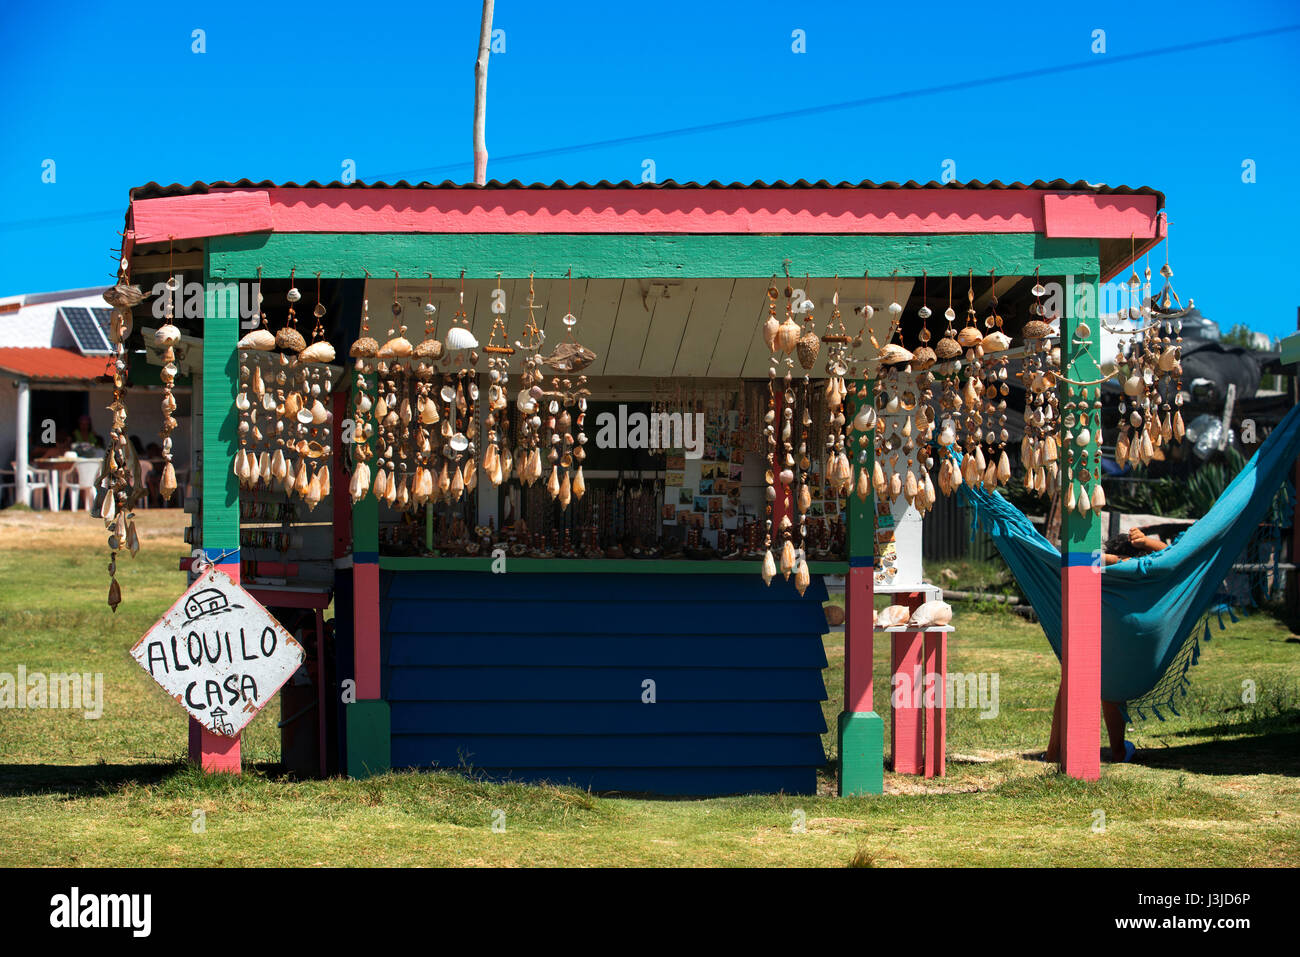 Casa Hippies : Rental hippie houses in cabo polonio rocha uruguay stock photo